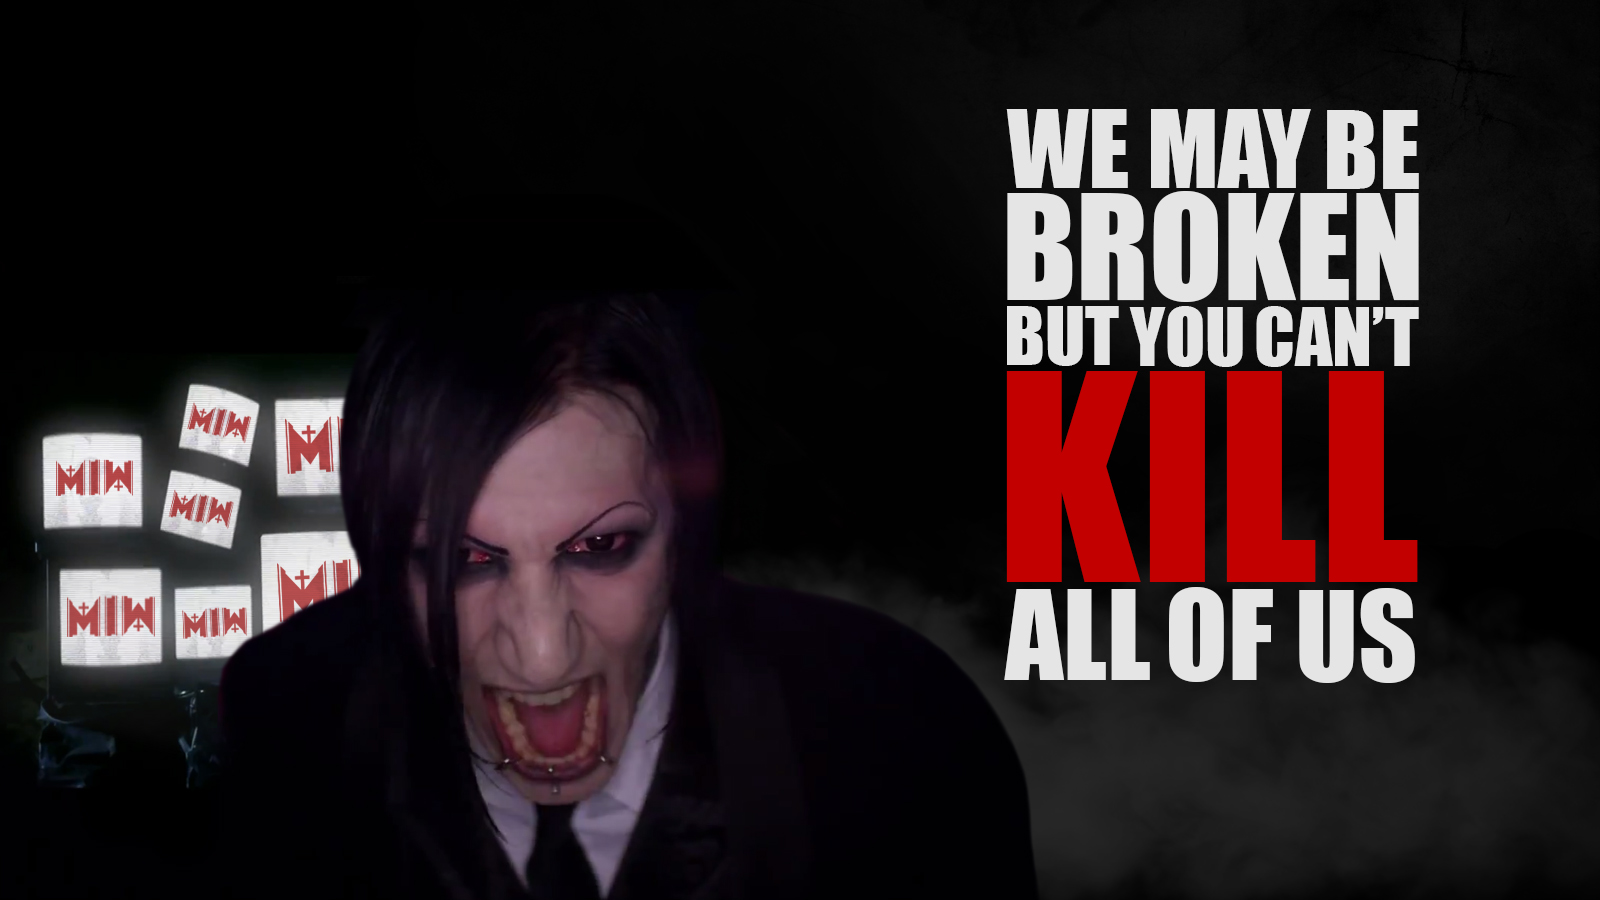 Motionless in White Wallpaper by ToneShifter Motionless in White Wallpaper  by ToneShifter